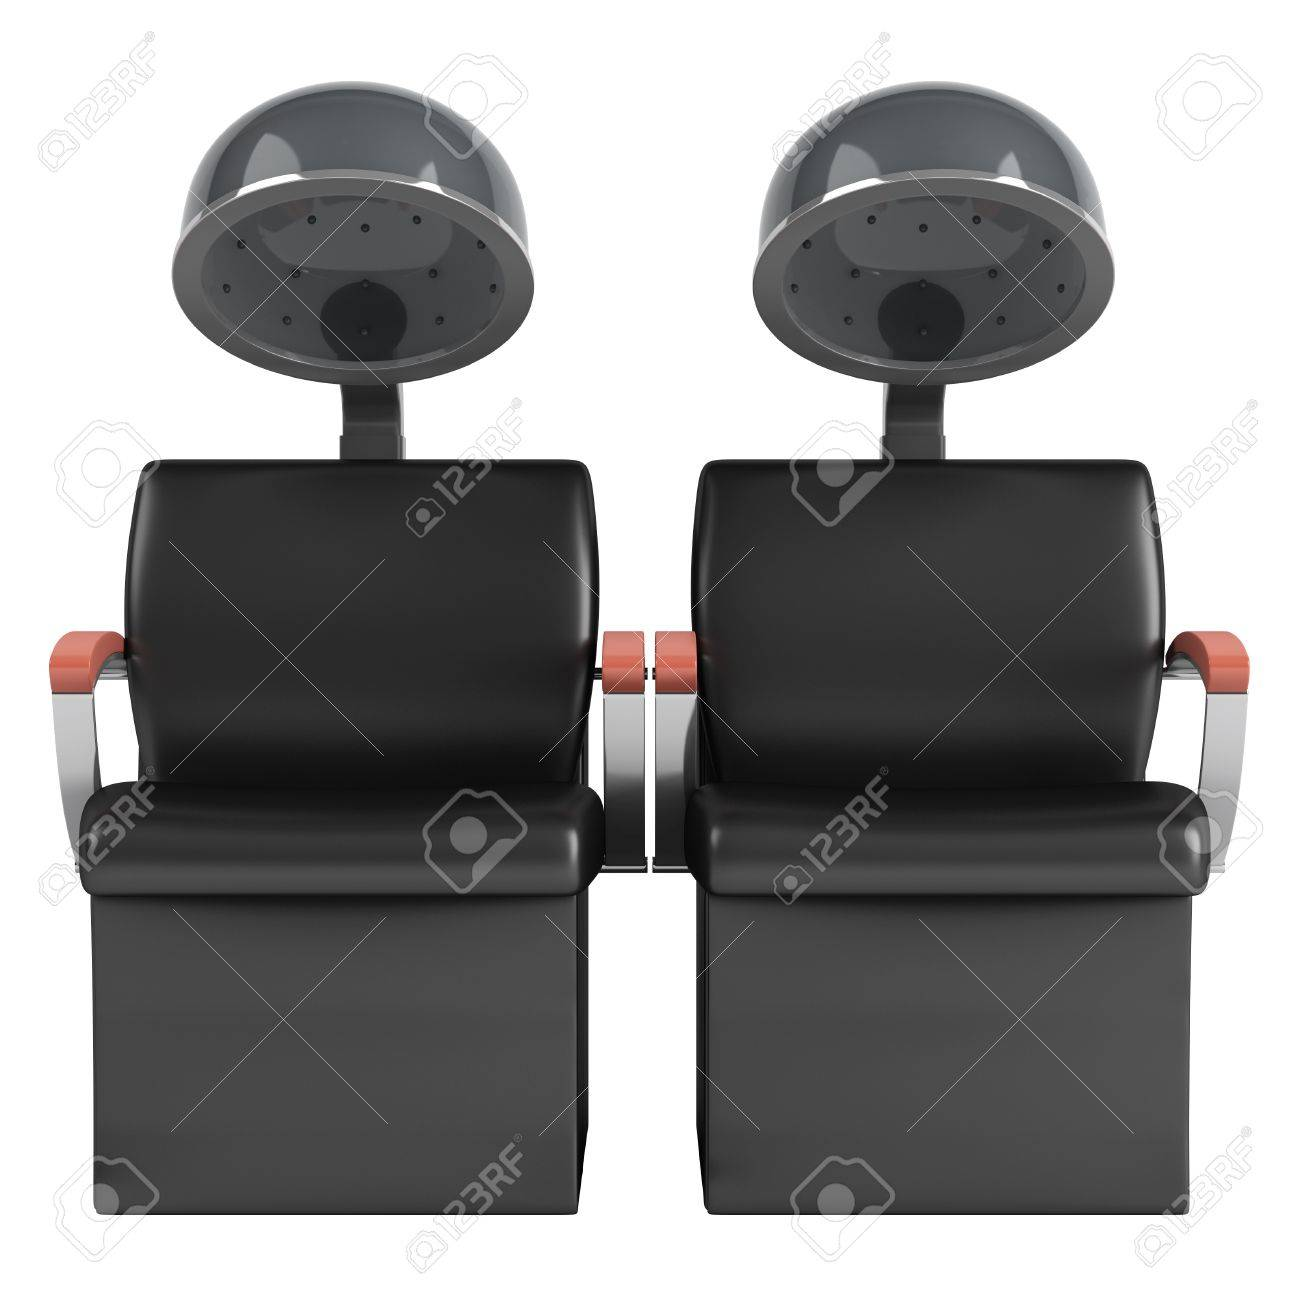 Double hair dryer chairs isolated on white background Stock Photo - 11977279